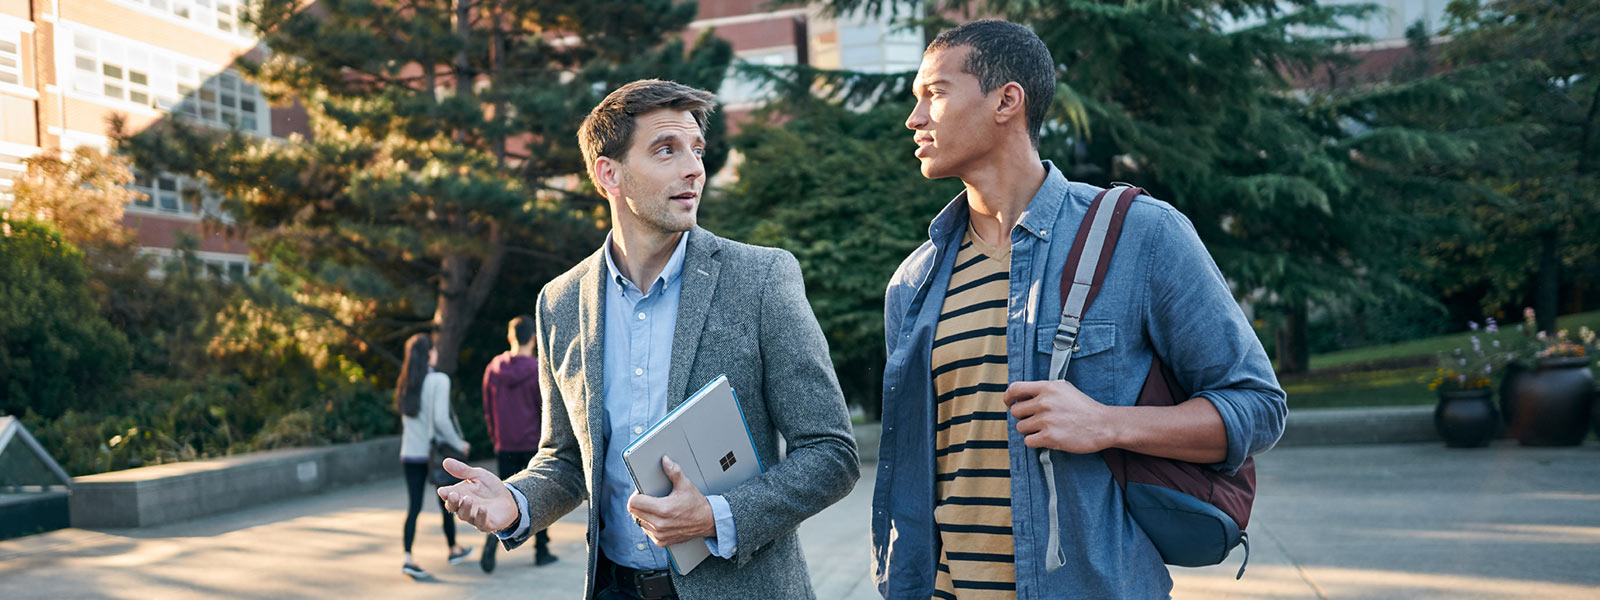 Two men walking across campus, one holding Surface Pro 4.